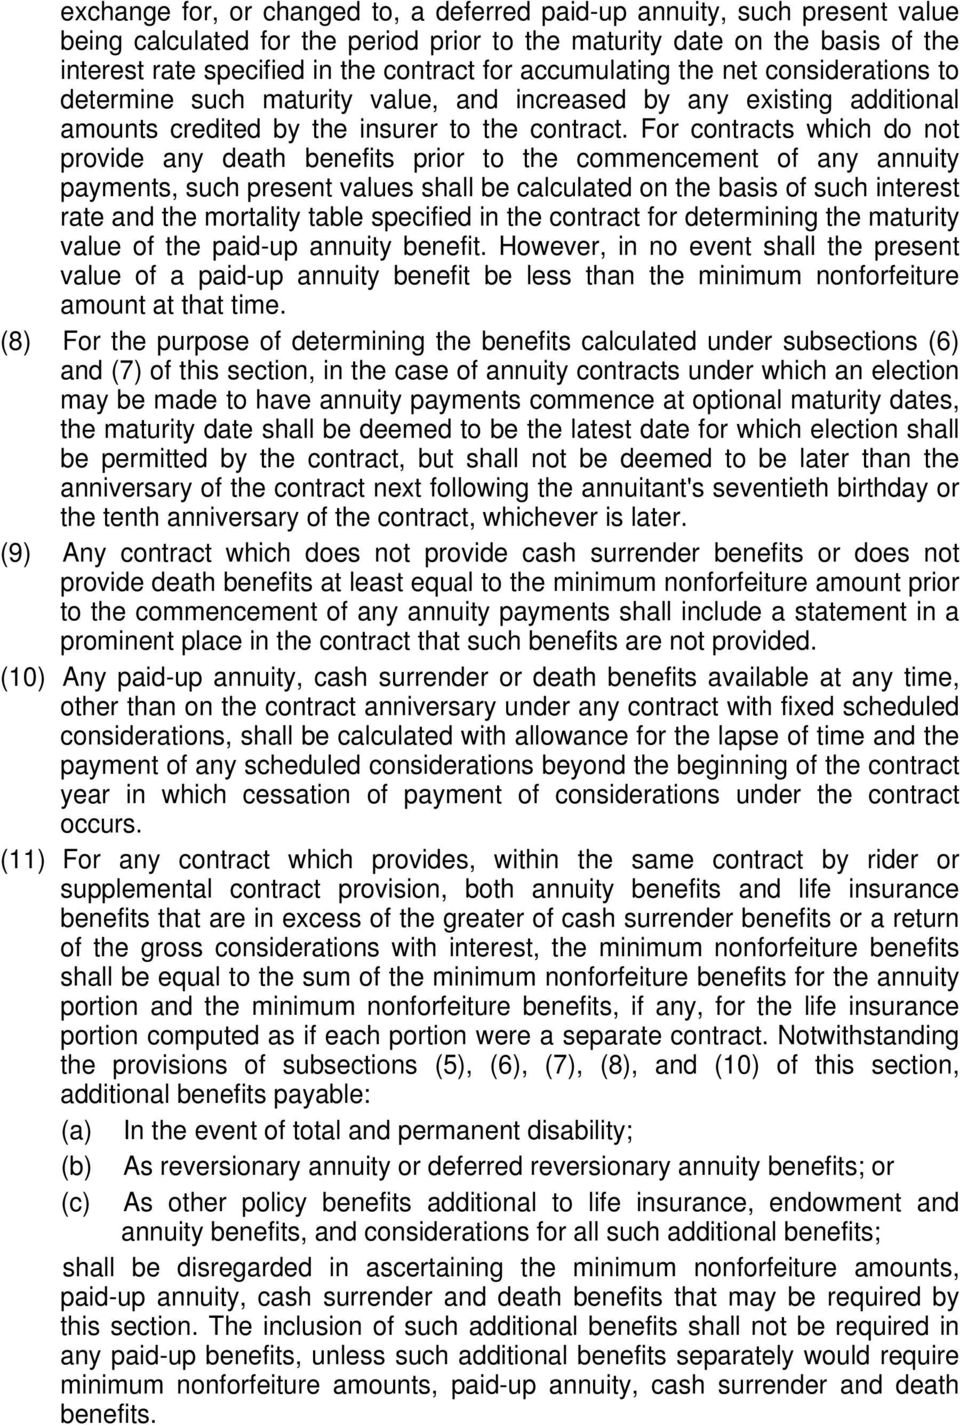 For contracts which do not provide any death benefits prior to the commencement of any annuity payments, such present values shall be calculated on the basis of such interest rate and the mortality